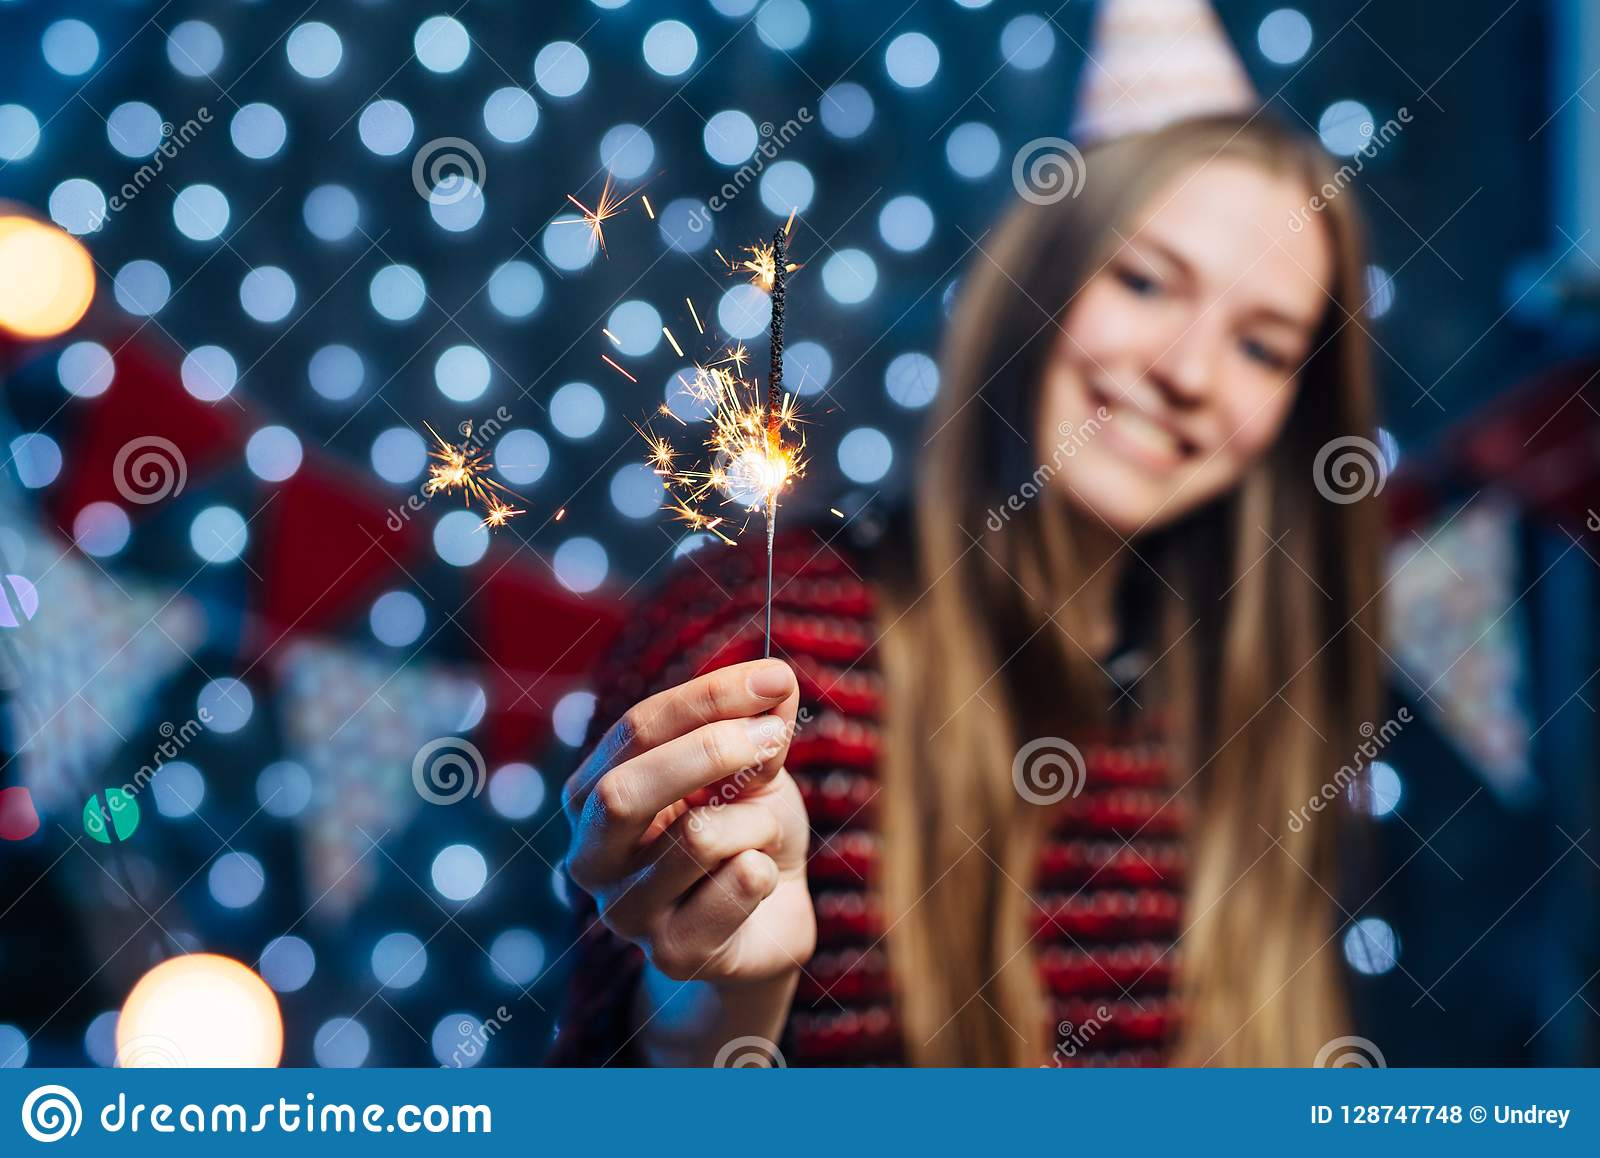 Cheerful young woman holding sparkler in hand. Christmas New Year